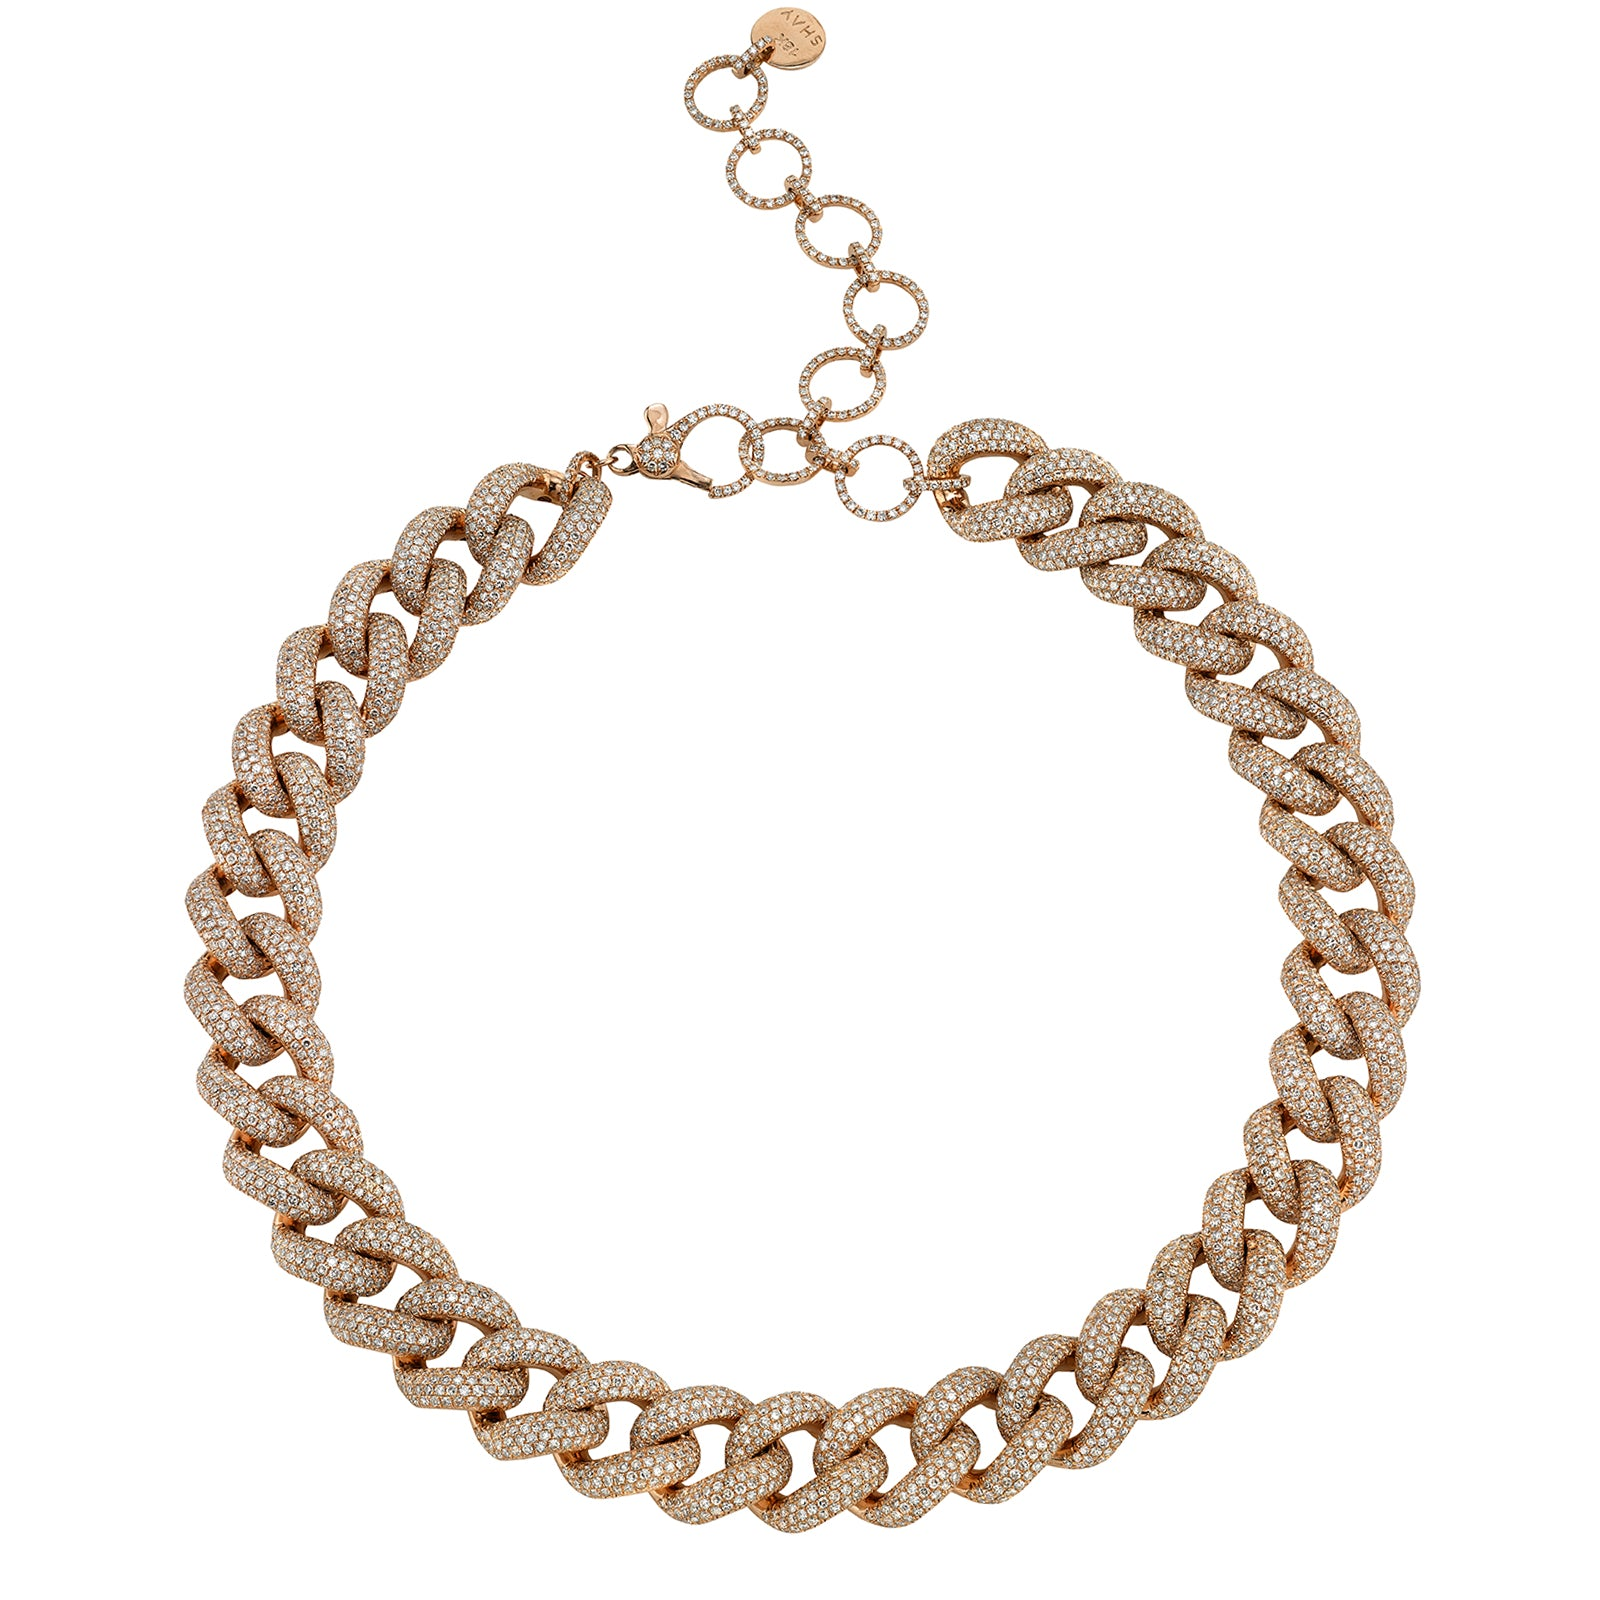 Shay Jumbo Diamond Link Necklace - Rose Gold - Necklaces - Broken English Jewelry